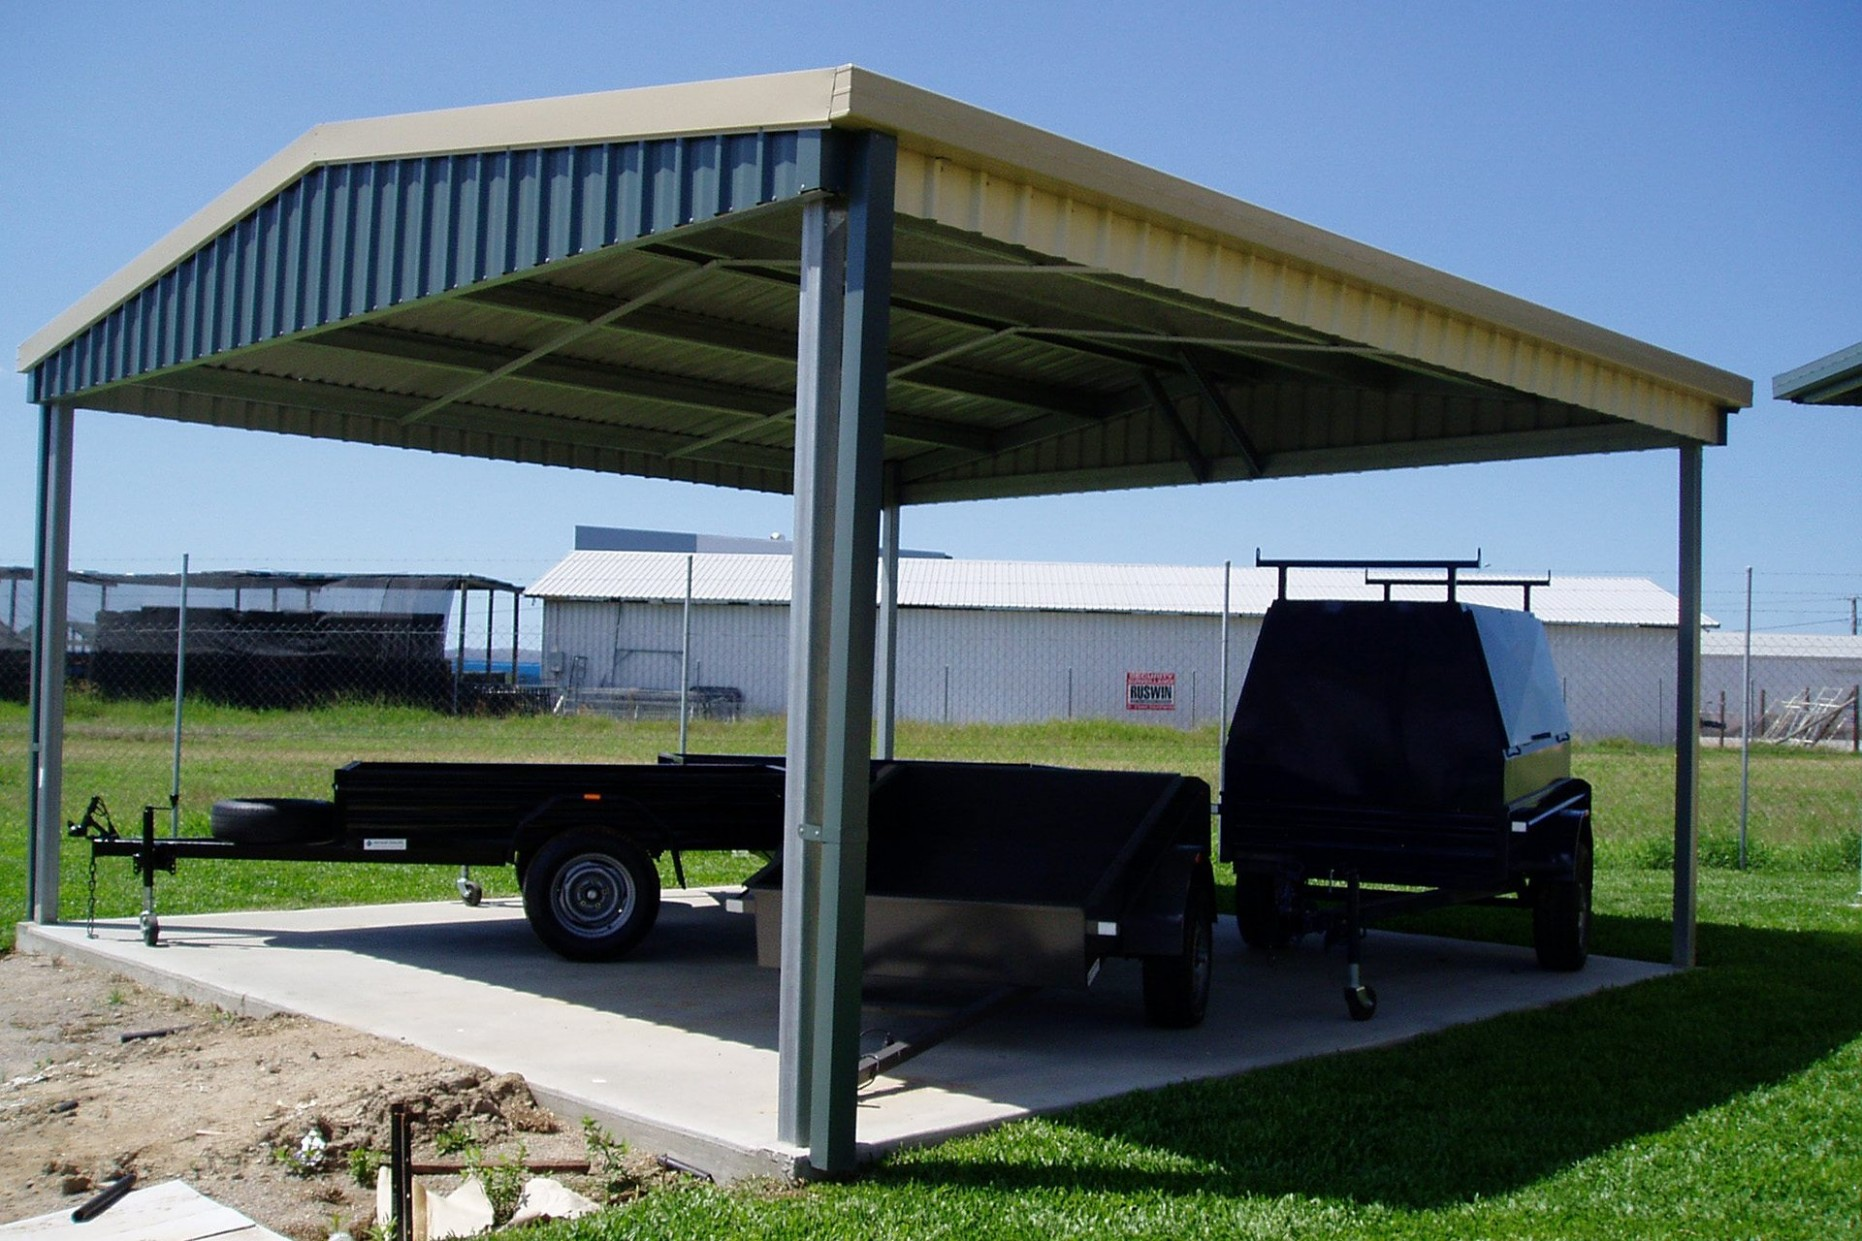 1517919395-carports-sheds-and-garages-for-sale-ranbuild-carports-and-sheds-for-sale.jpg